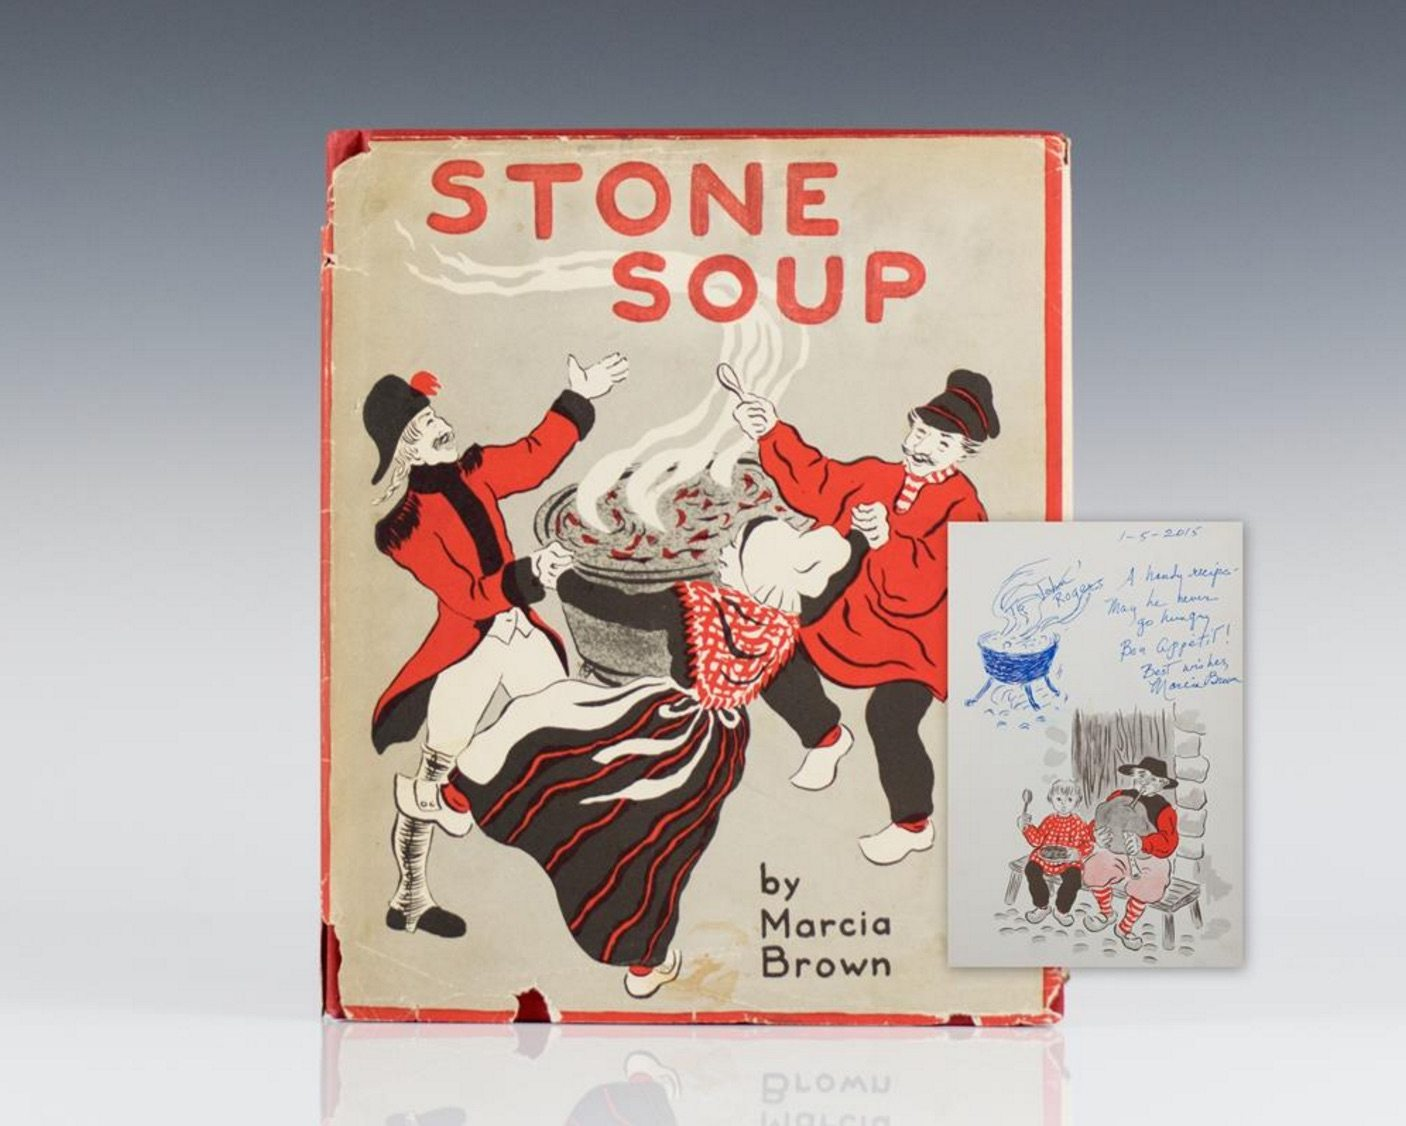 First Edition Stone Soup by Marcia Brown